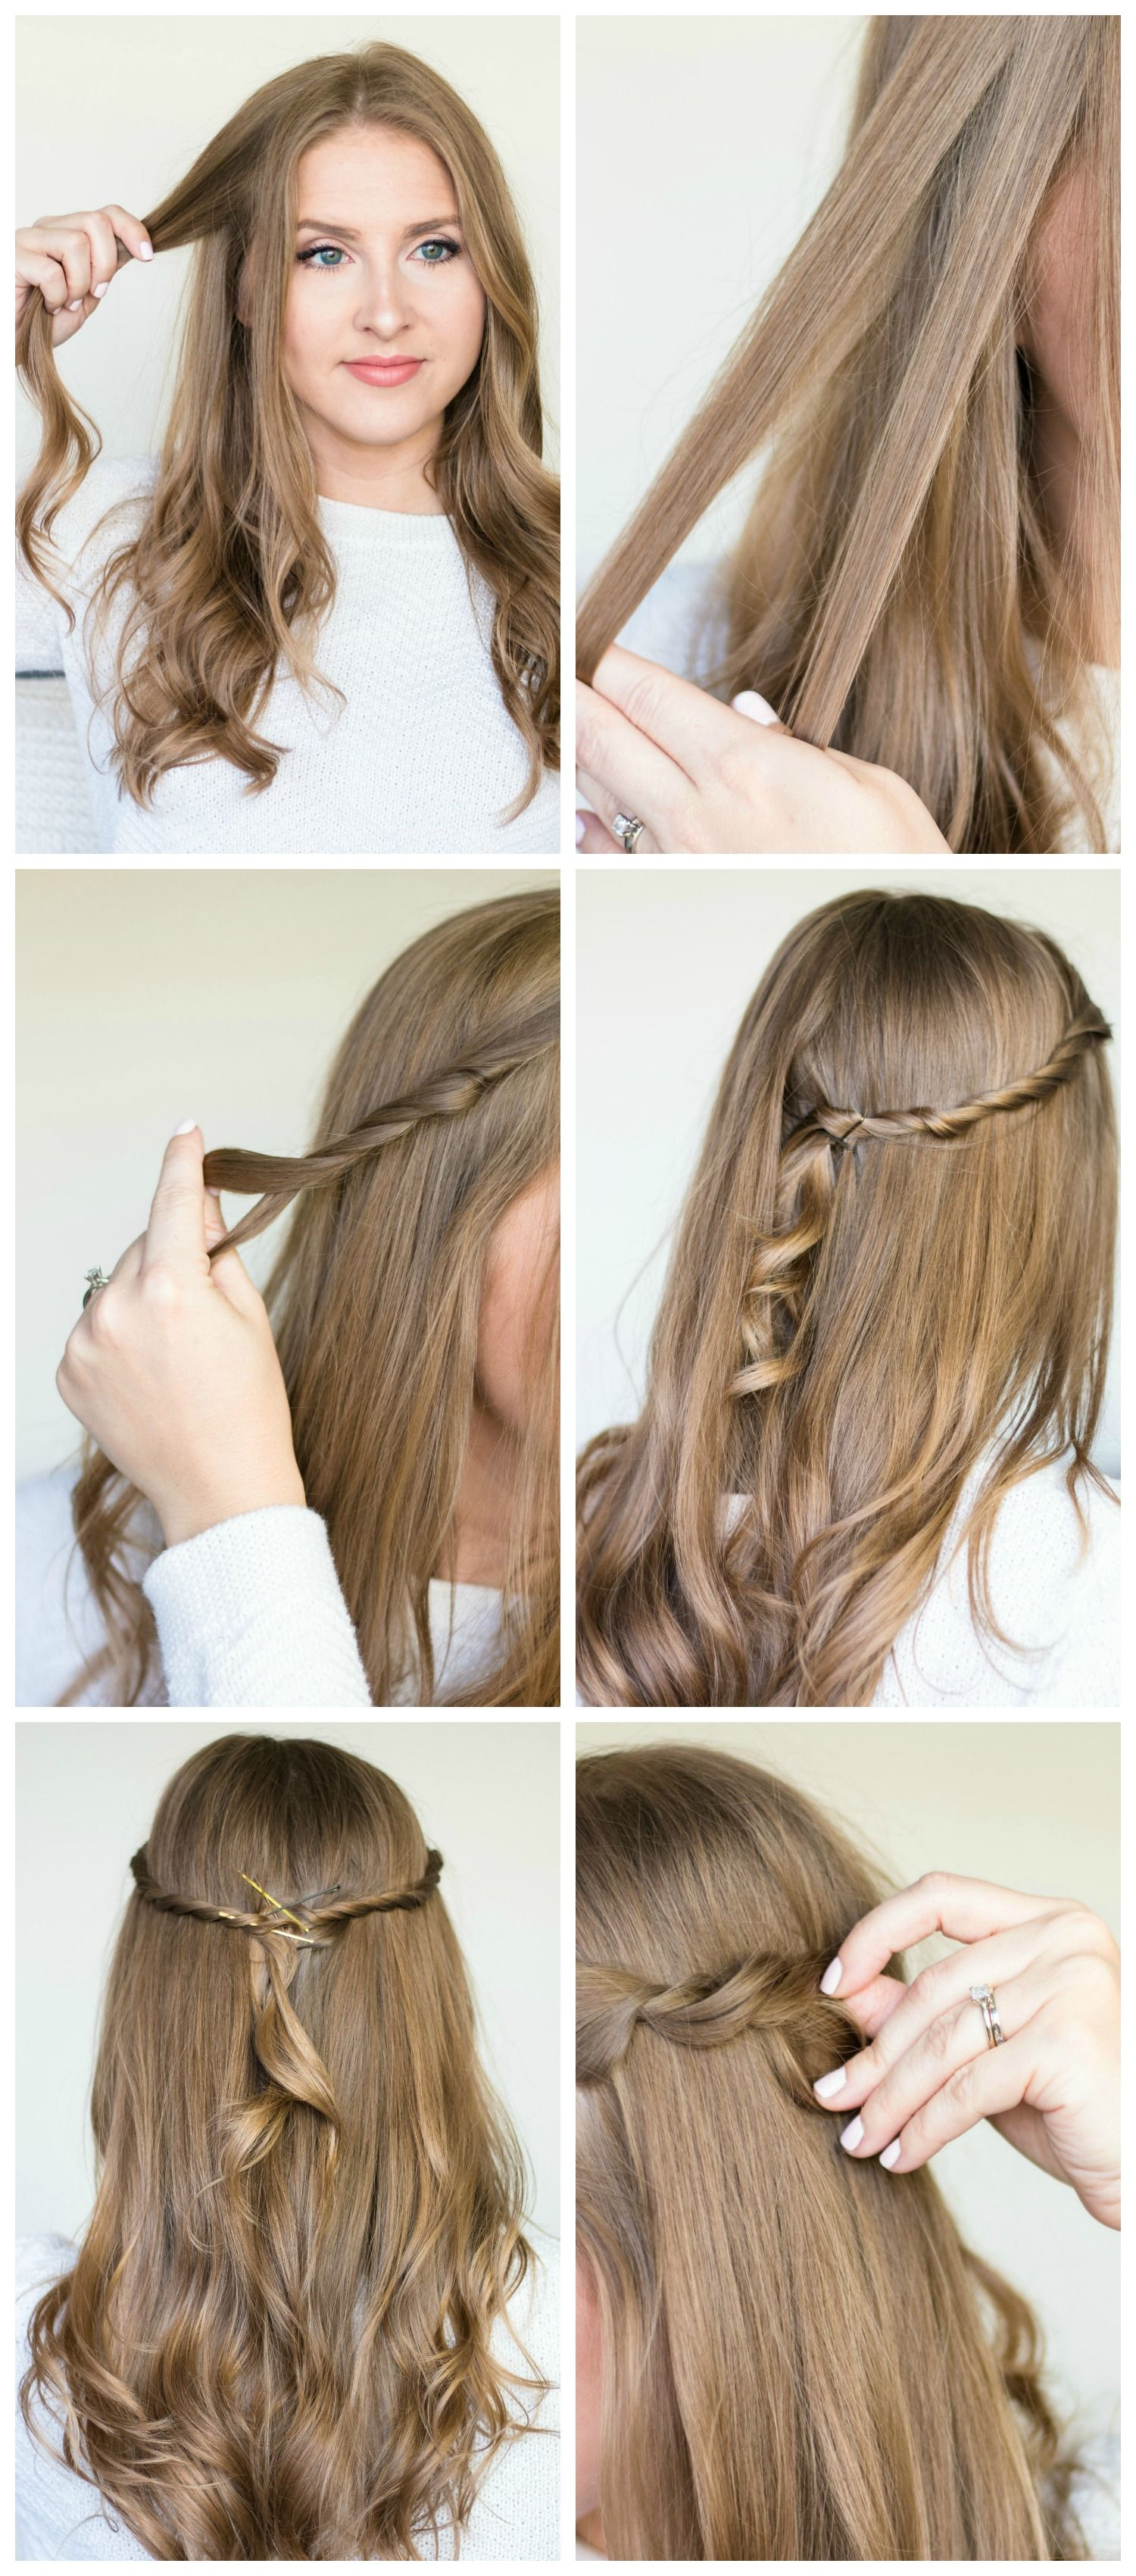 twisted-half-up-hair-style-tutorial-pantene  Easy hairstyles